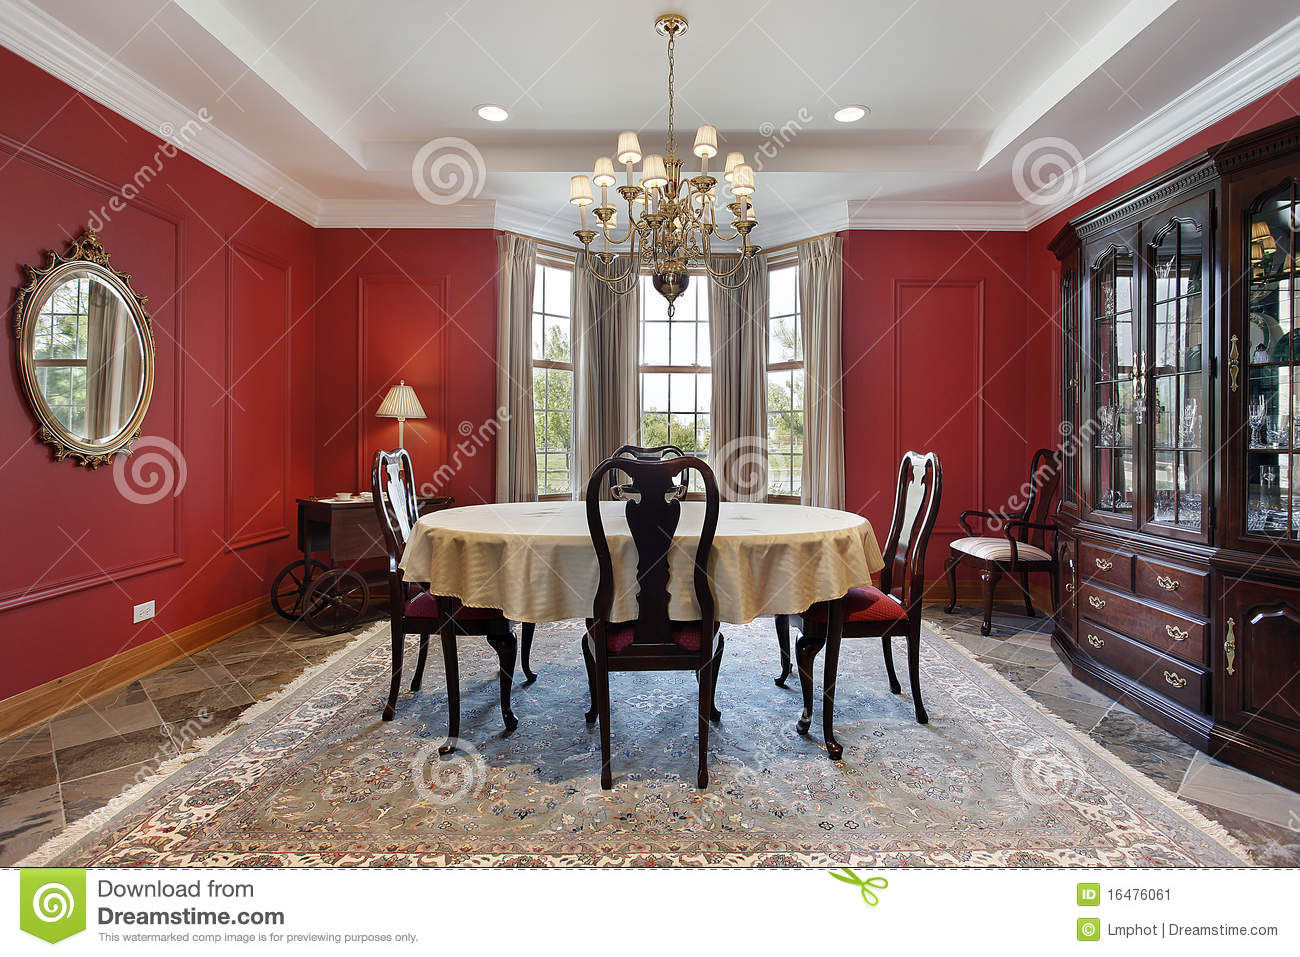 Dining room with red walls stock image image 16476061 for Dining room ideas with red walls